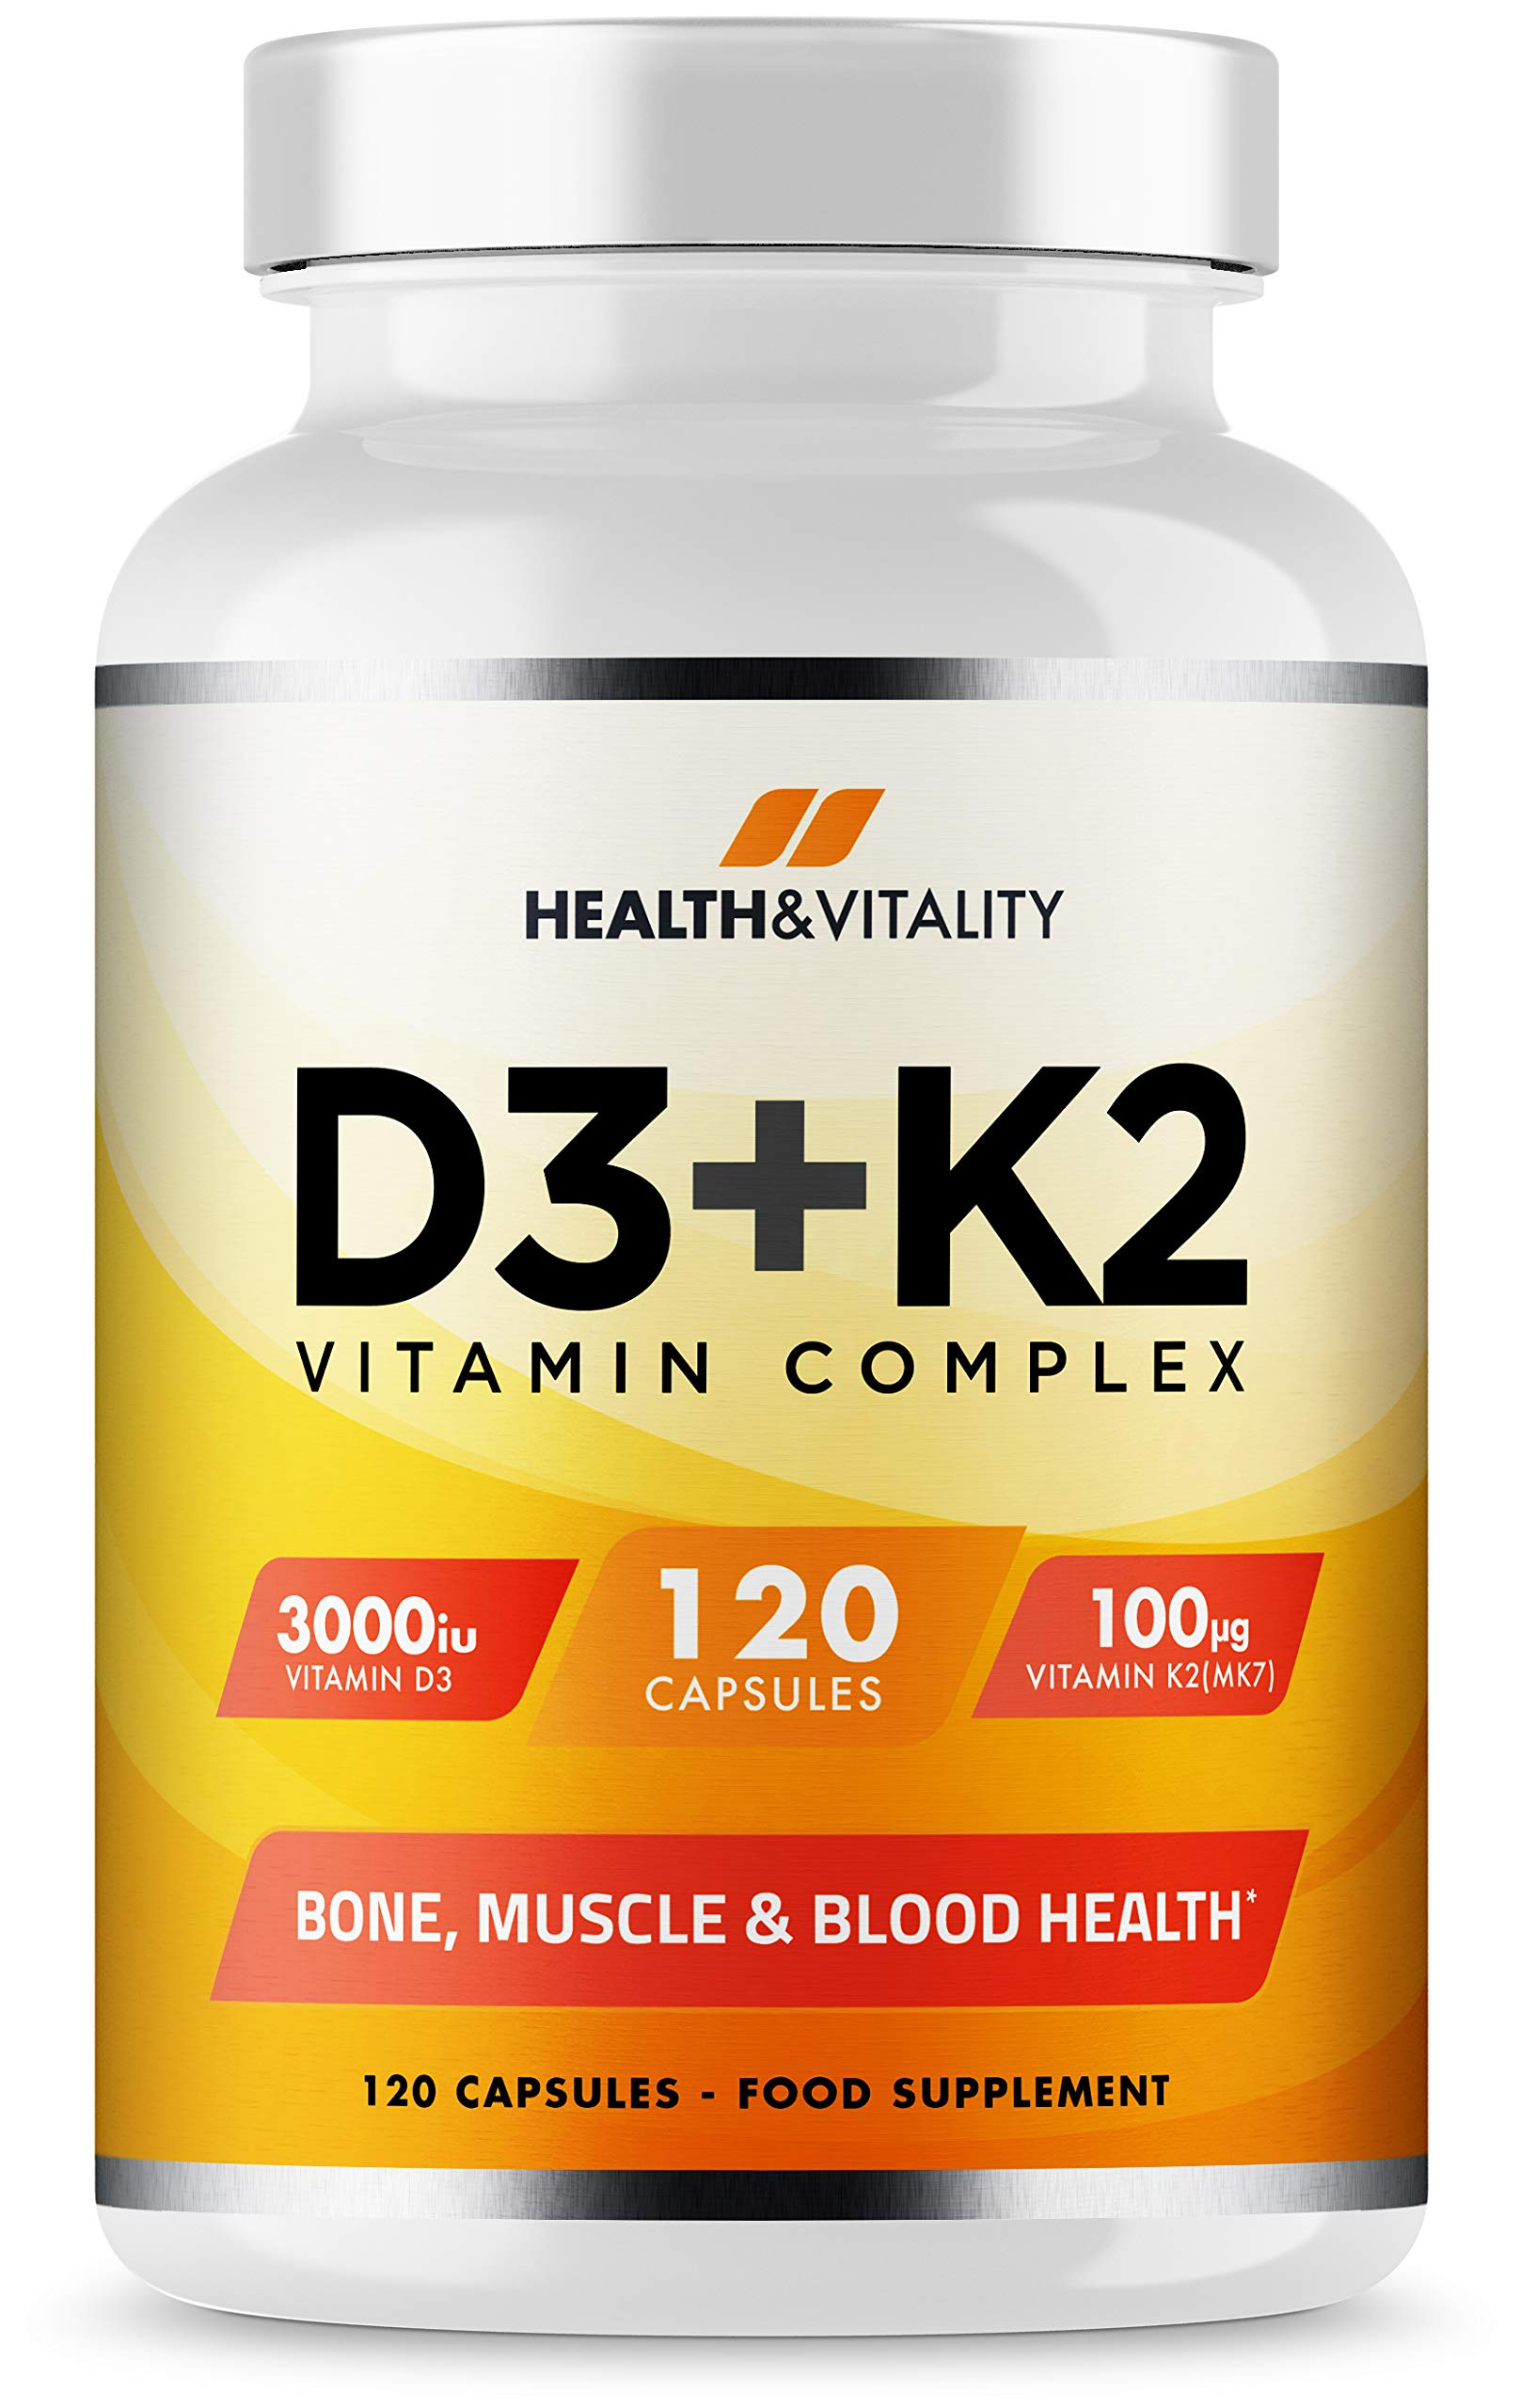 Vitamin D3 3,000 IU & Vitamin K2 100ug (MK7) - Vitamin D3 K2-120 Vegetarian Capsules - UK Made Premium Quality - Vitamin D Supplement - Bone, Muscle, Blood & Immune Support for Men & Women product image